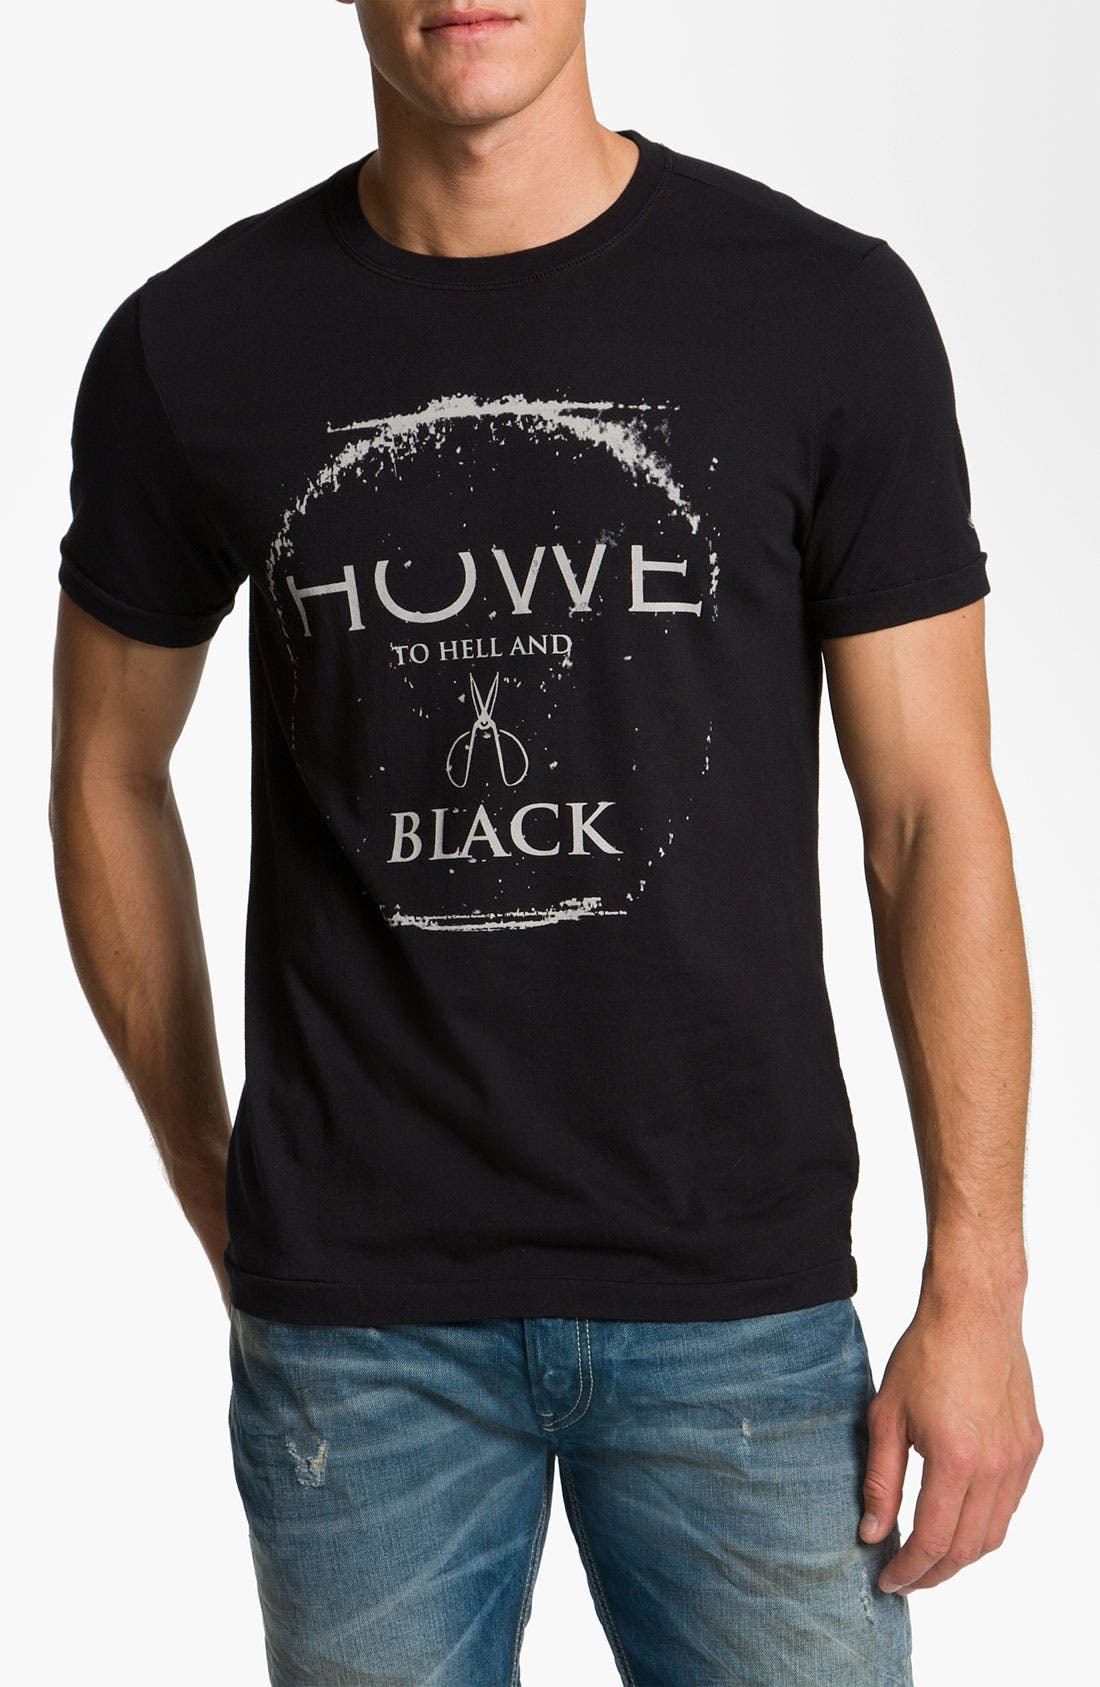 Alternate Image 1 Selected - Howe 'To Hell and Black' Graphic T-Shirt